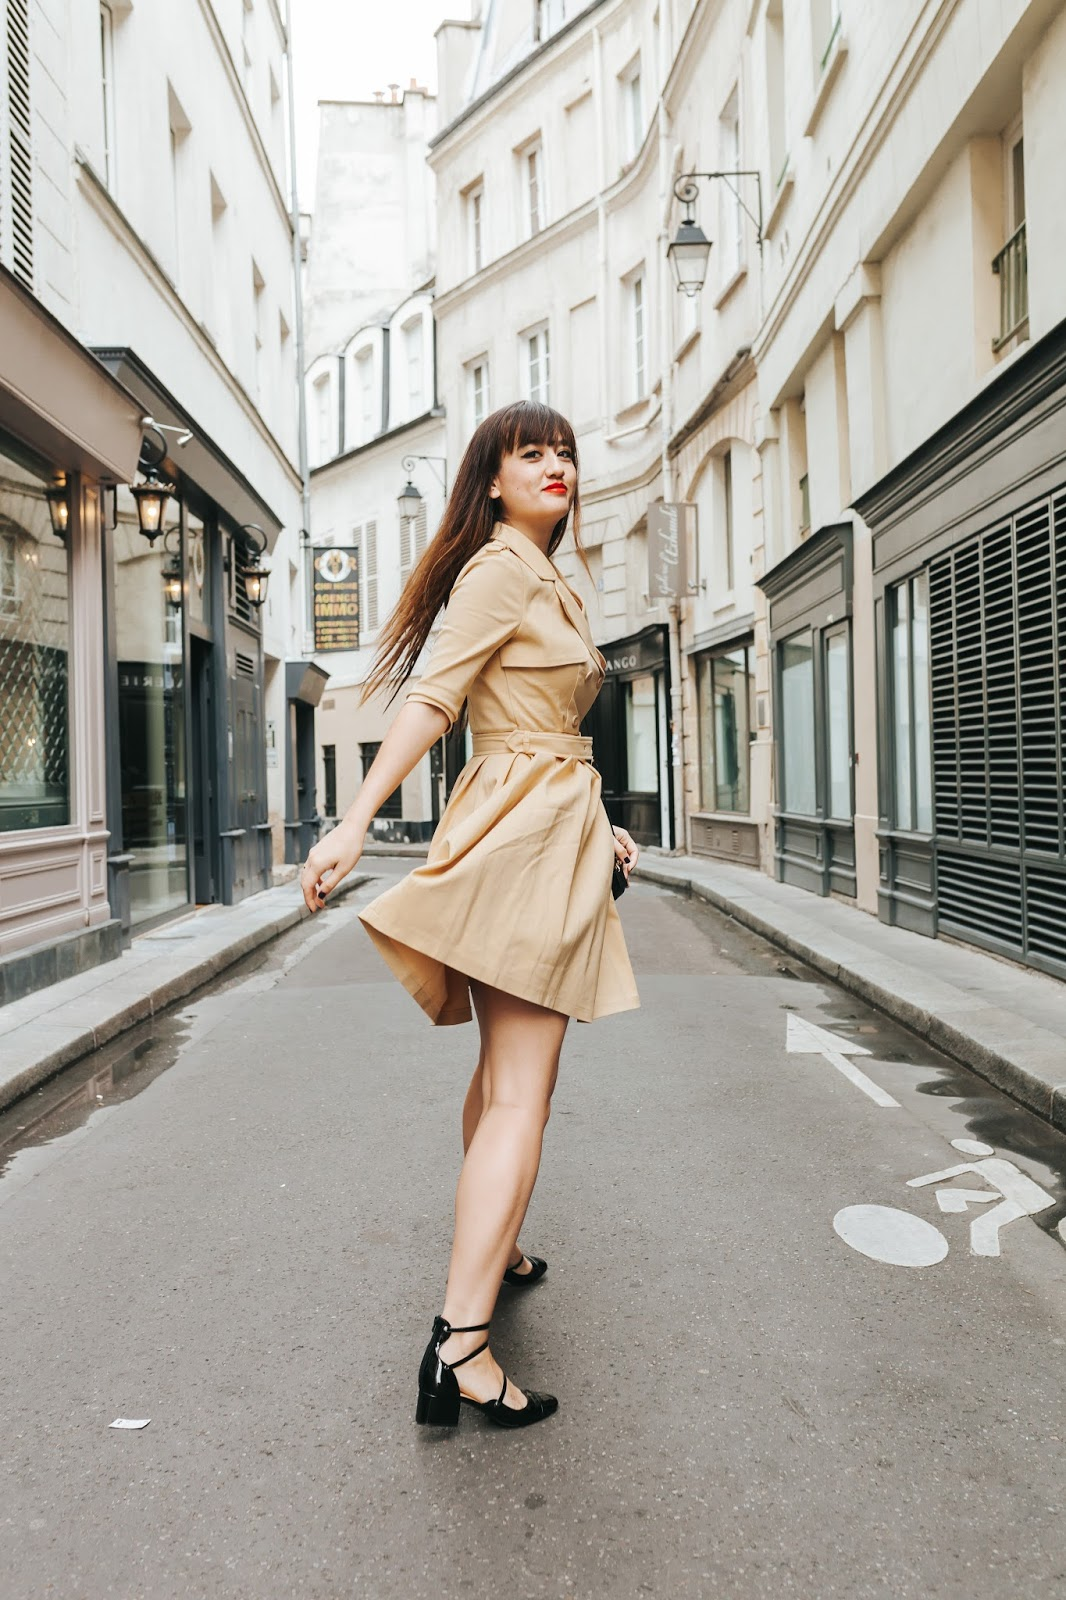 parisian fashion blogger, look, style, mode, chic, trench dress, chic wish, meetmeinparee